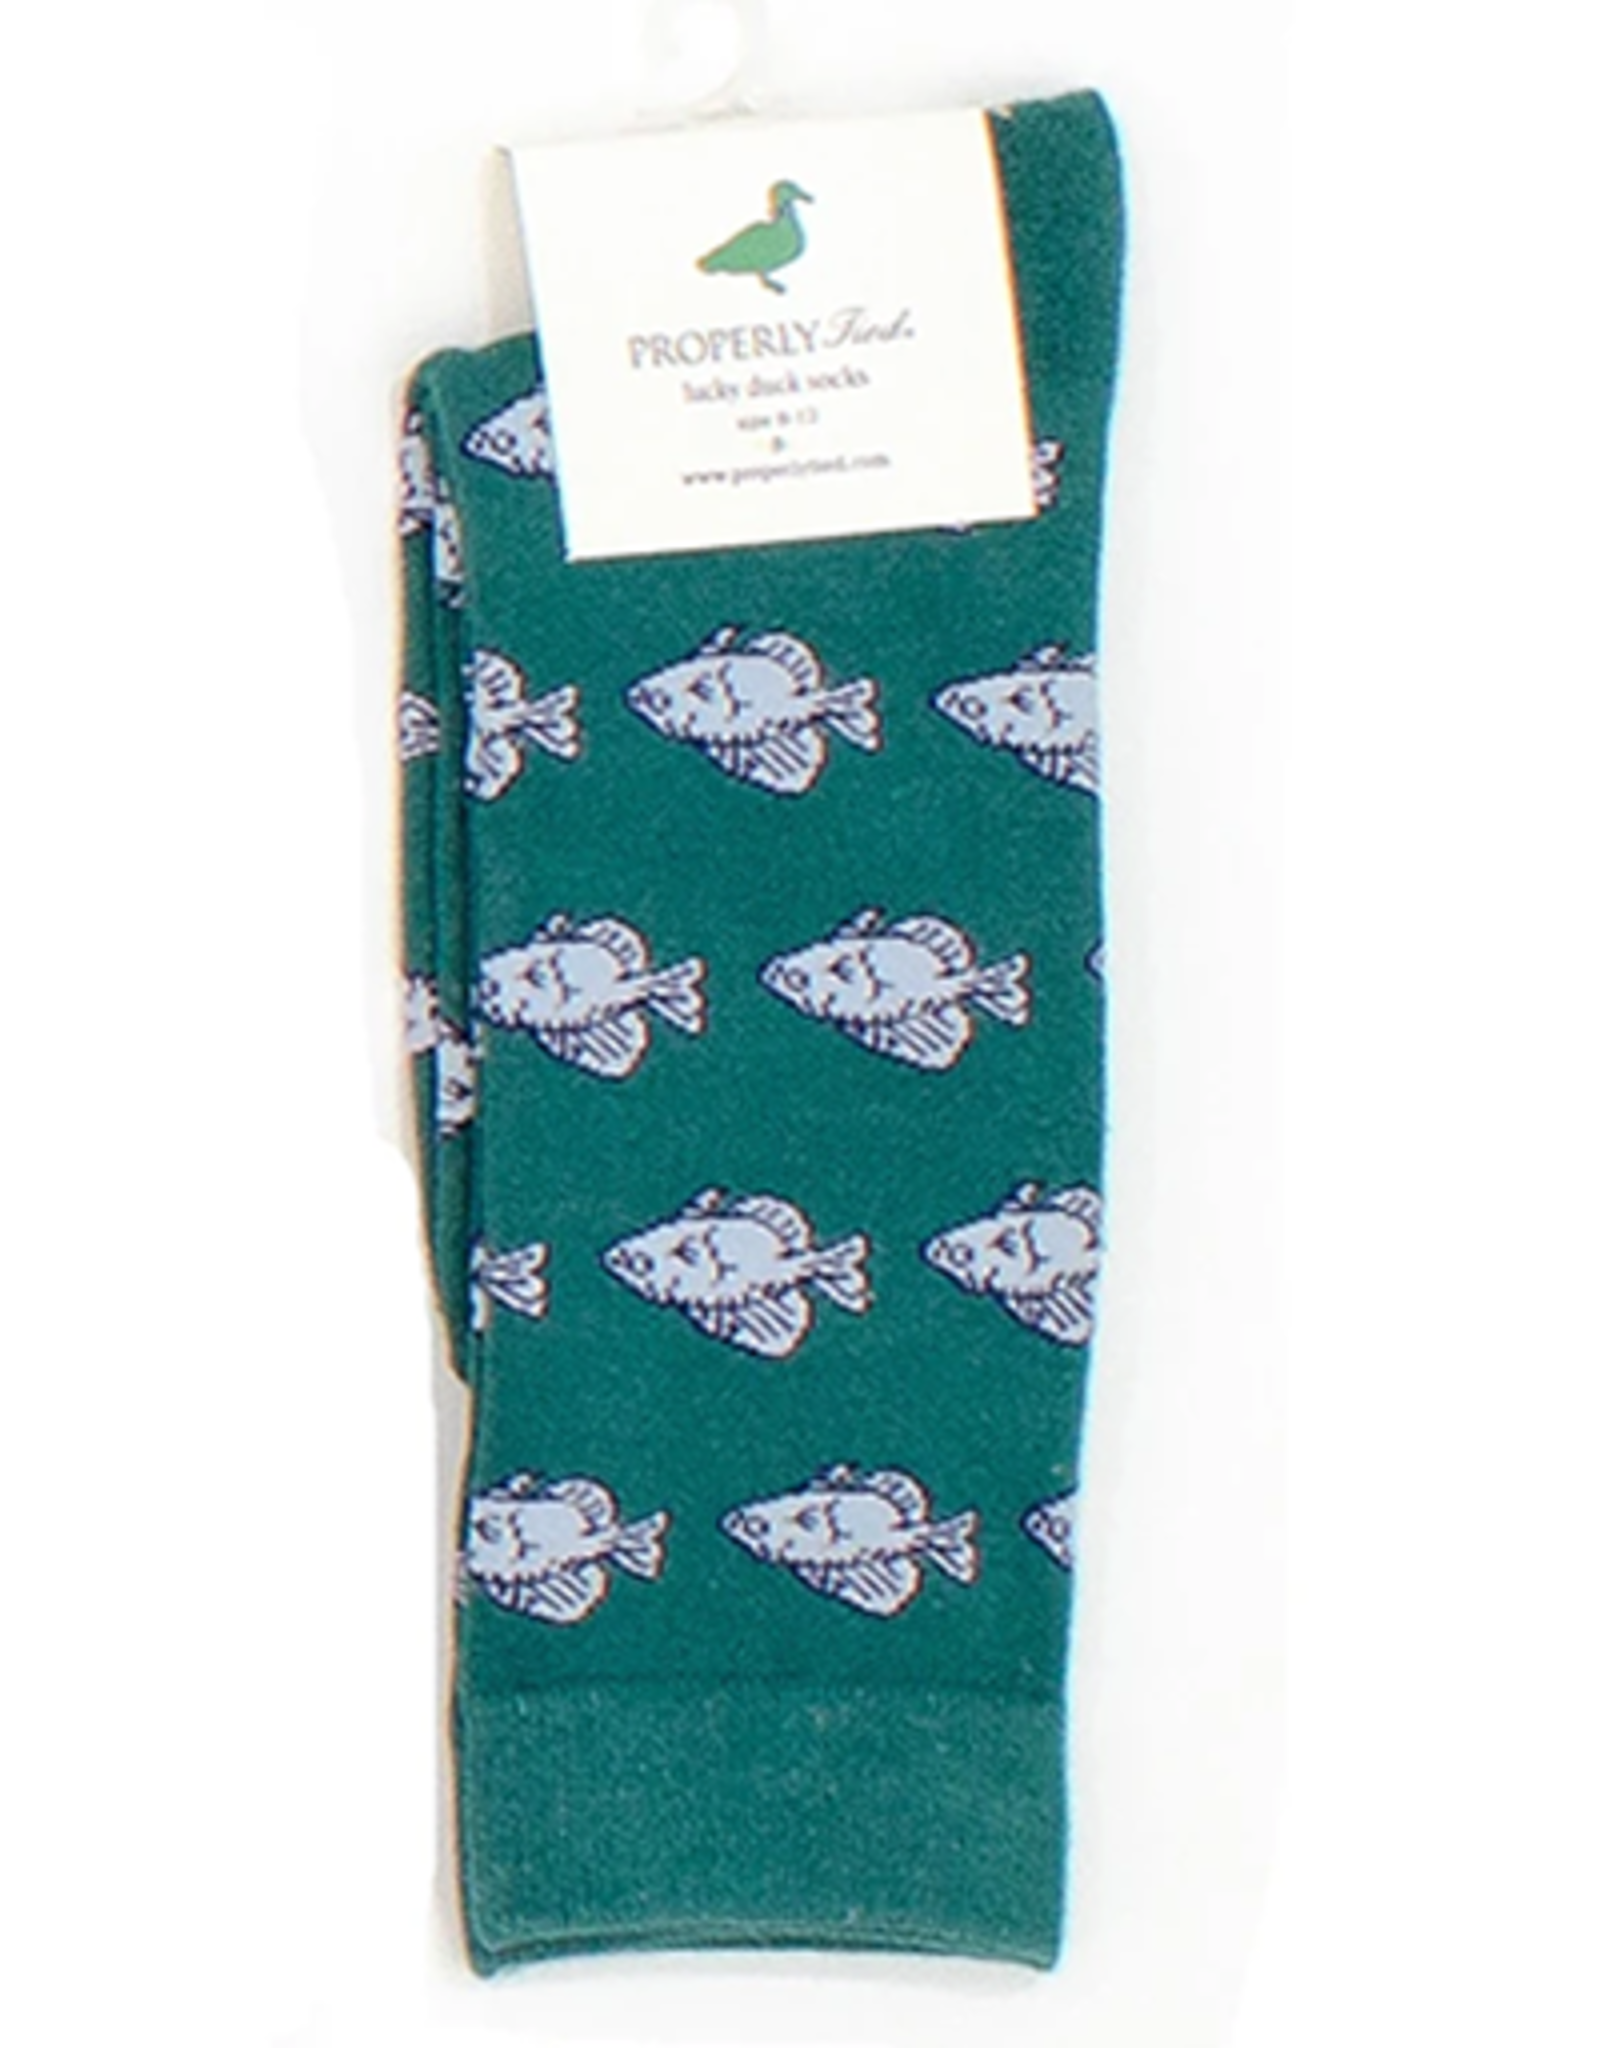 Properly Tied Lucky Duck Sock - Crappie